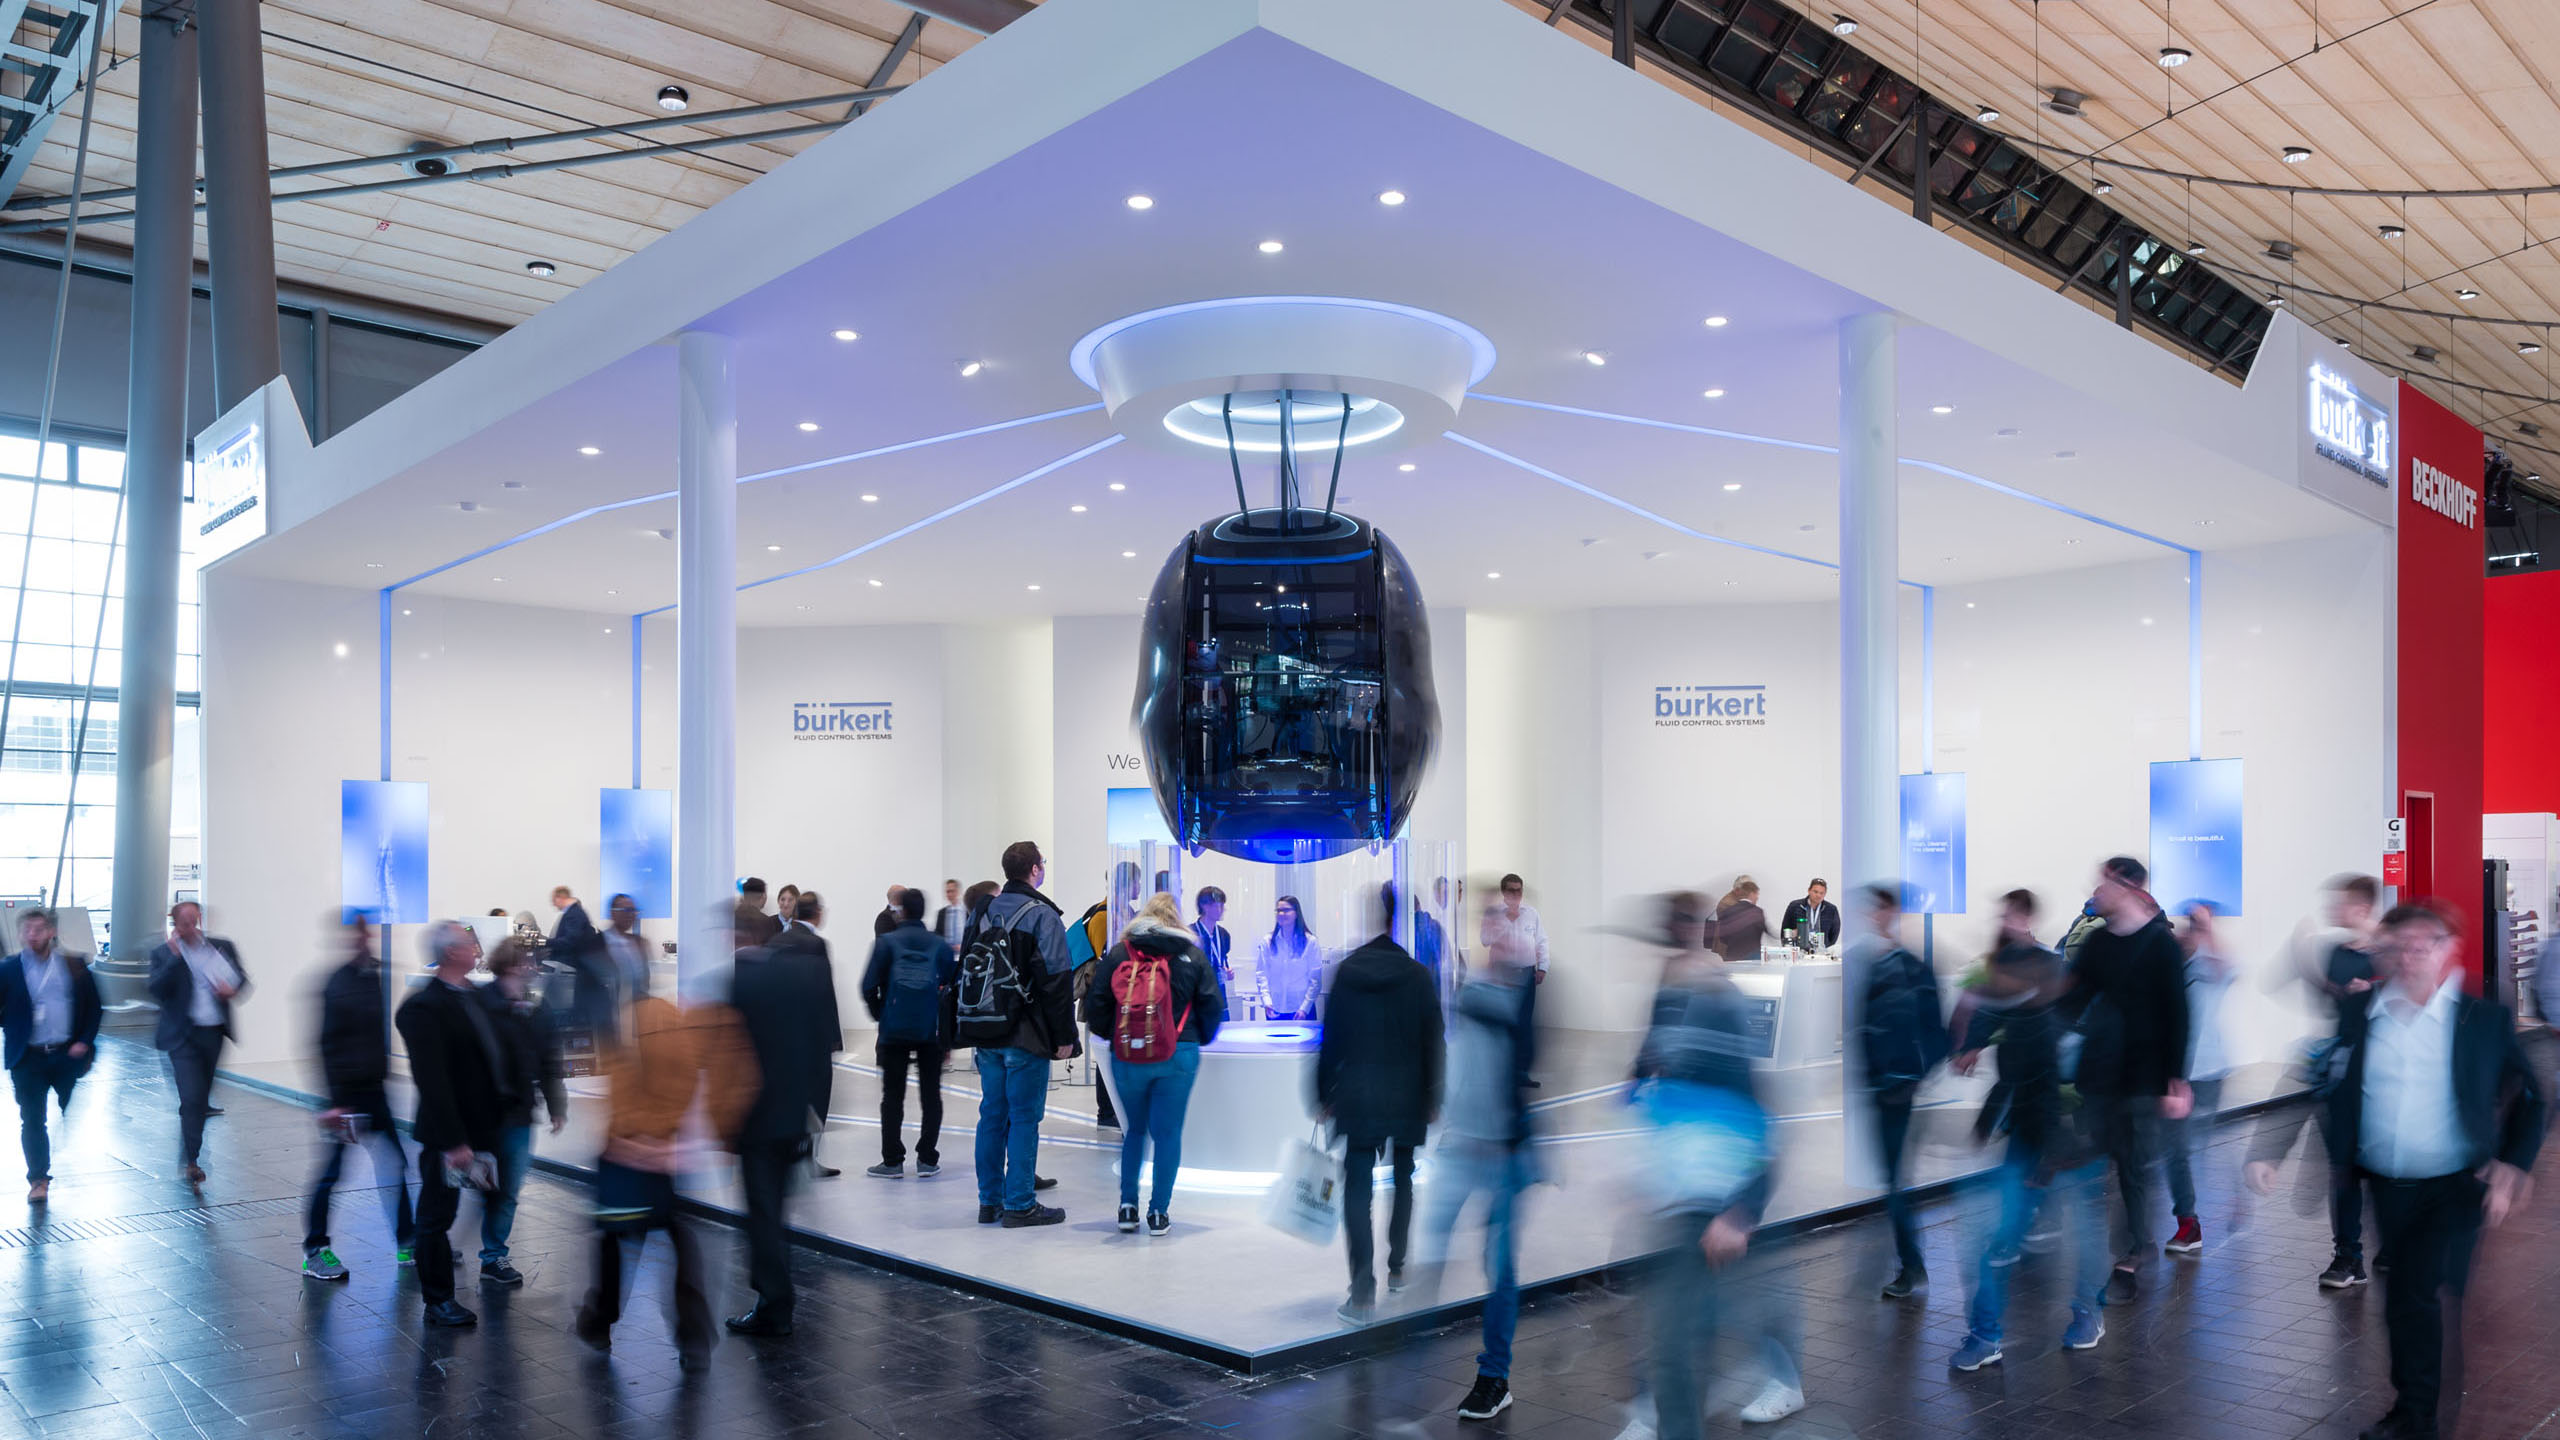 BÜRKERT, HANNOVER MESSE INTERNATIONAL